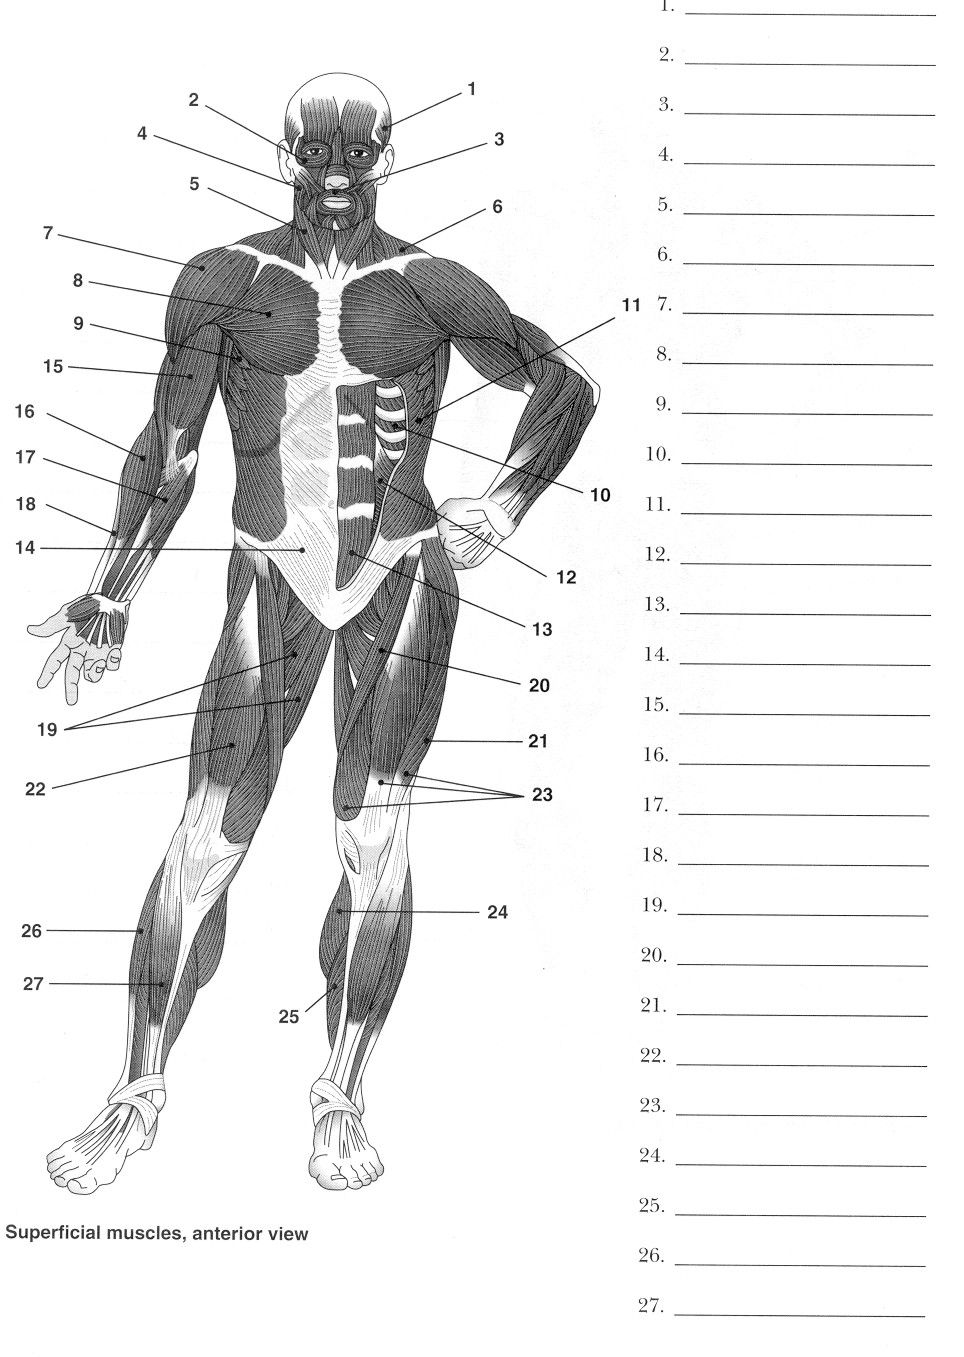 Printables Anatomy And Physiology Worksheets anatomy labeling worksheets google search i heart 6 best images of printable muscle blank head and neck muscles diagram muscular system worksheet labe